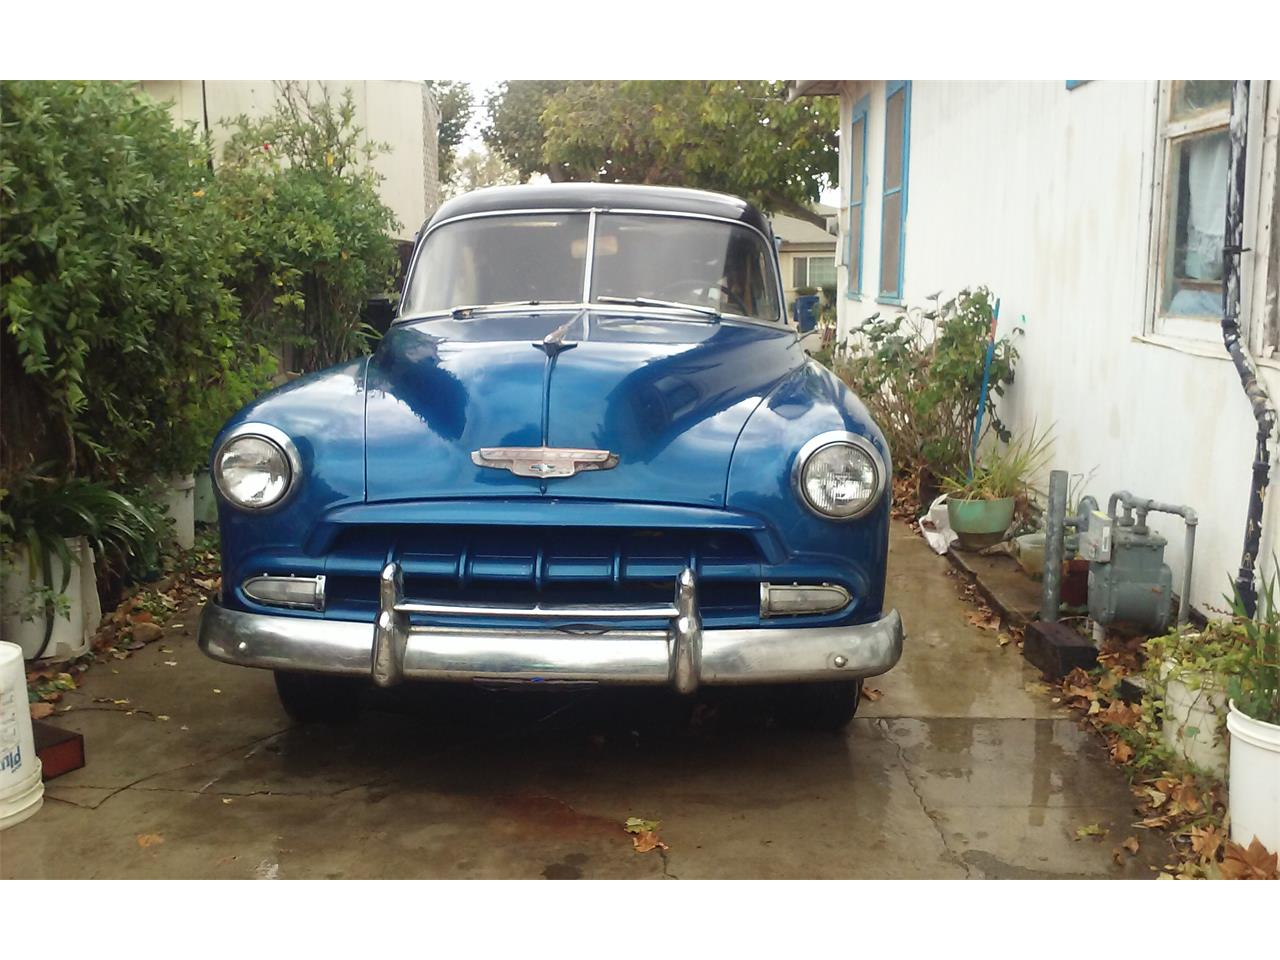 Large Picture of '51 Chevrolet Deluxe located in King City California - $10,000.00 Offered by a Private Seller - LE0J